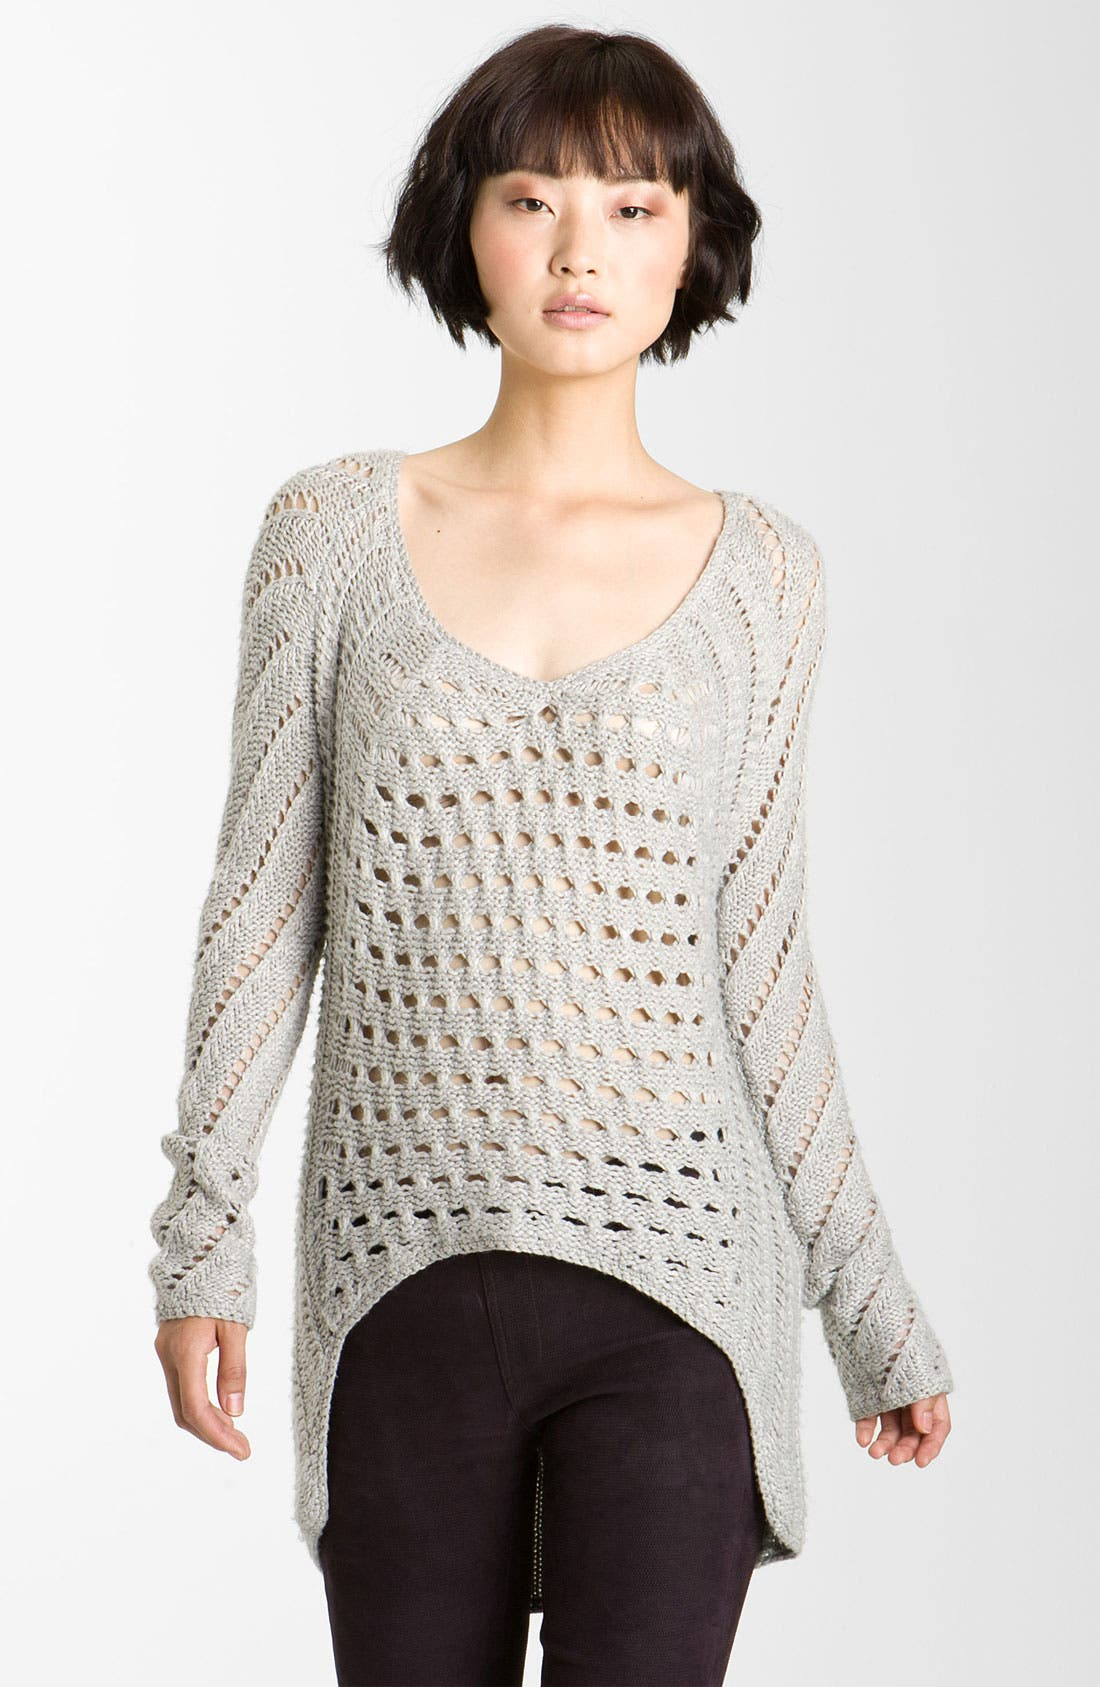 Main Image - Helmut Lang 'Inherent Texture' Knit Sweater